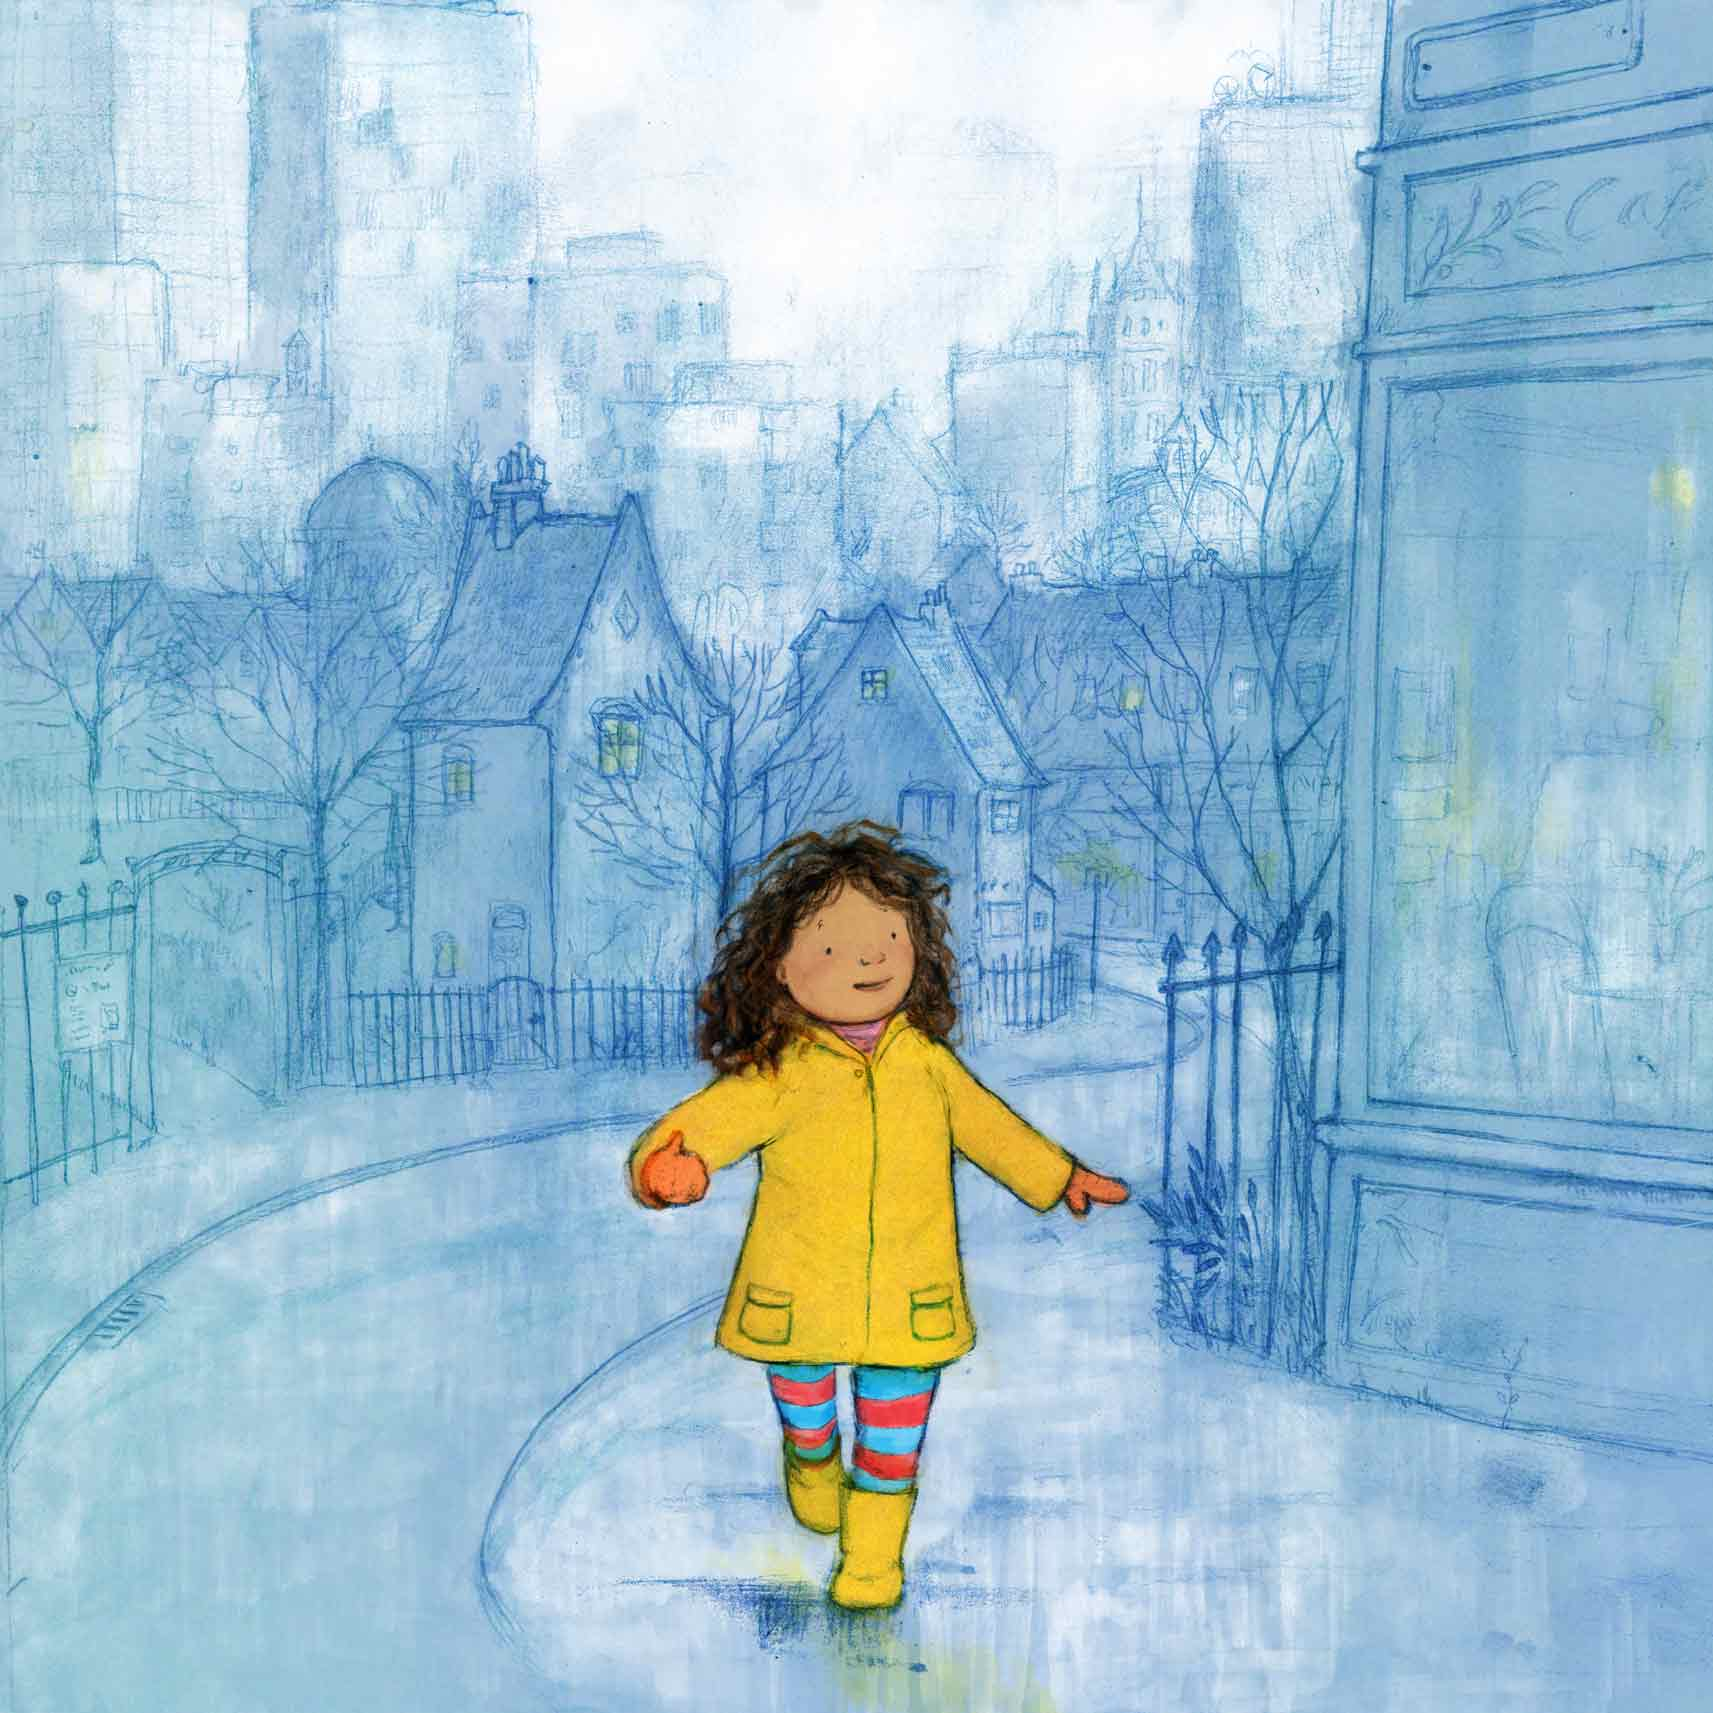 illustration girl walking in the rain rainy street